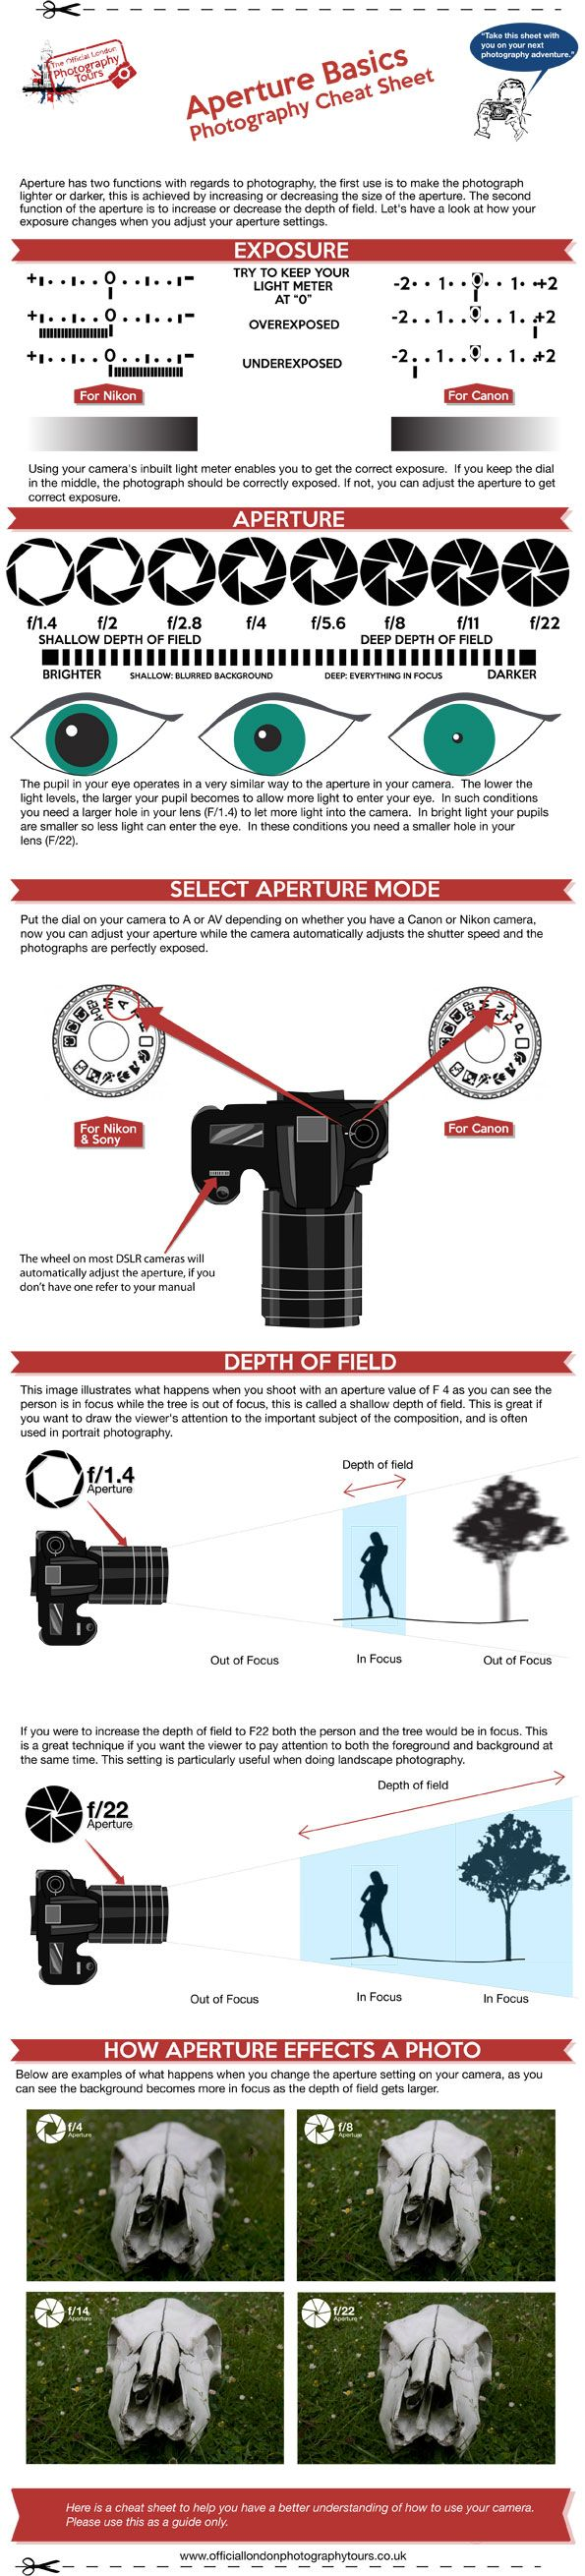 Aperture basics and F Stops Explained http://thepinuppodcast.com re-pinned this because we are trying to make the pinup community a little bit better.